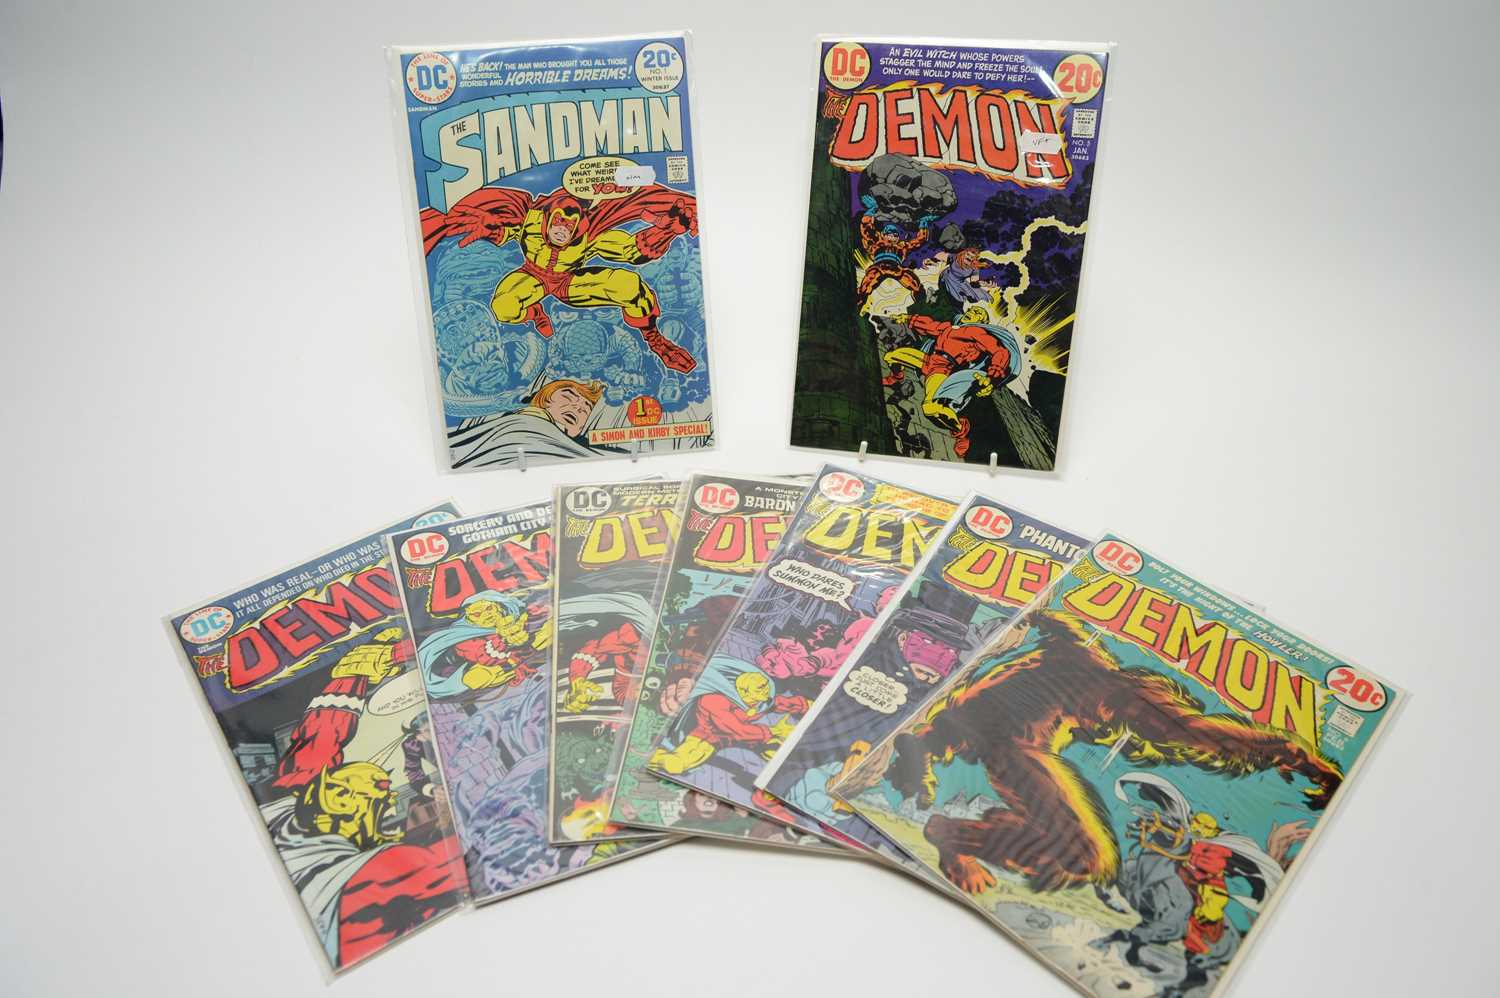 Lot 89 - The Sandman and The Demon by DC.